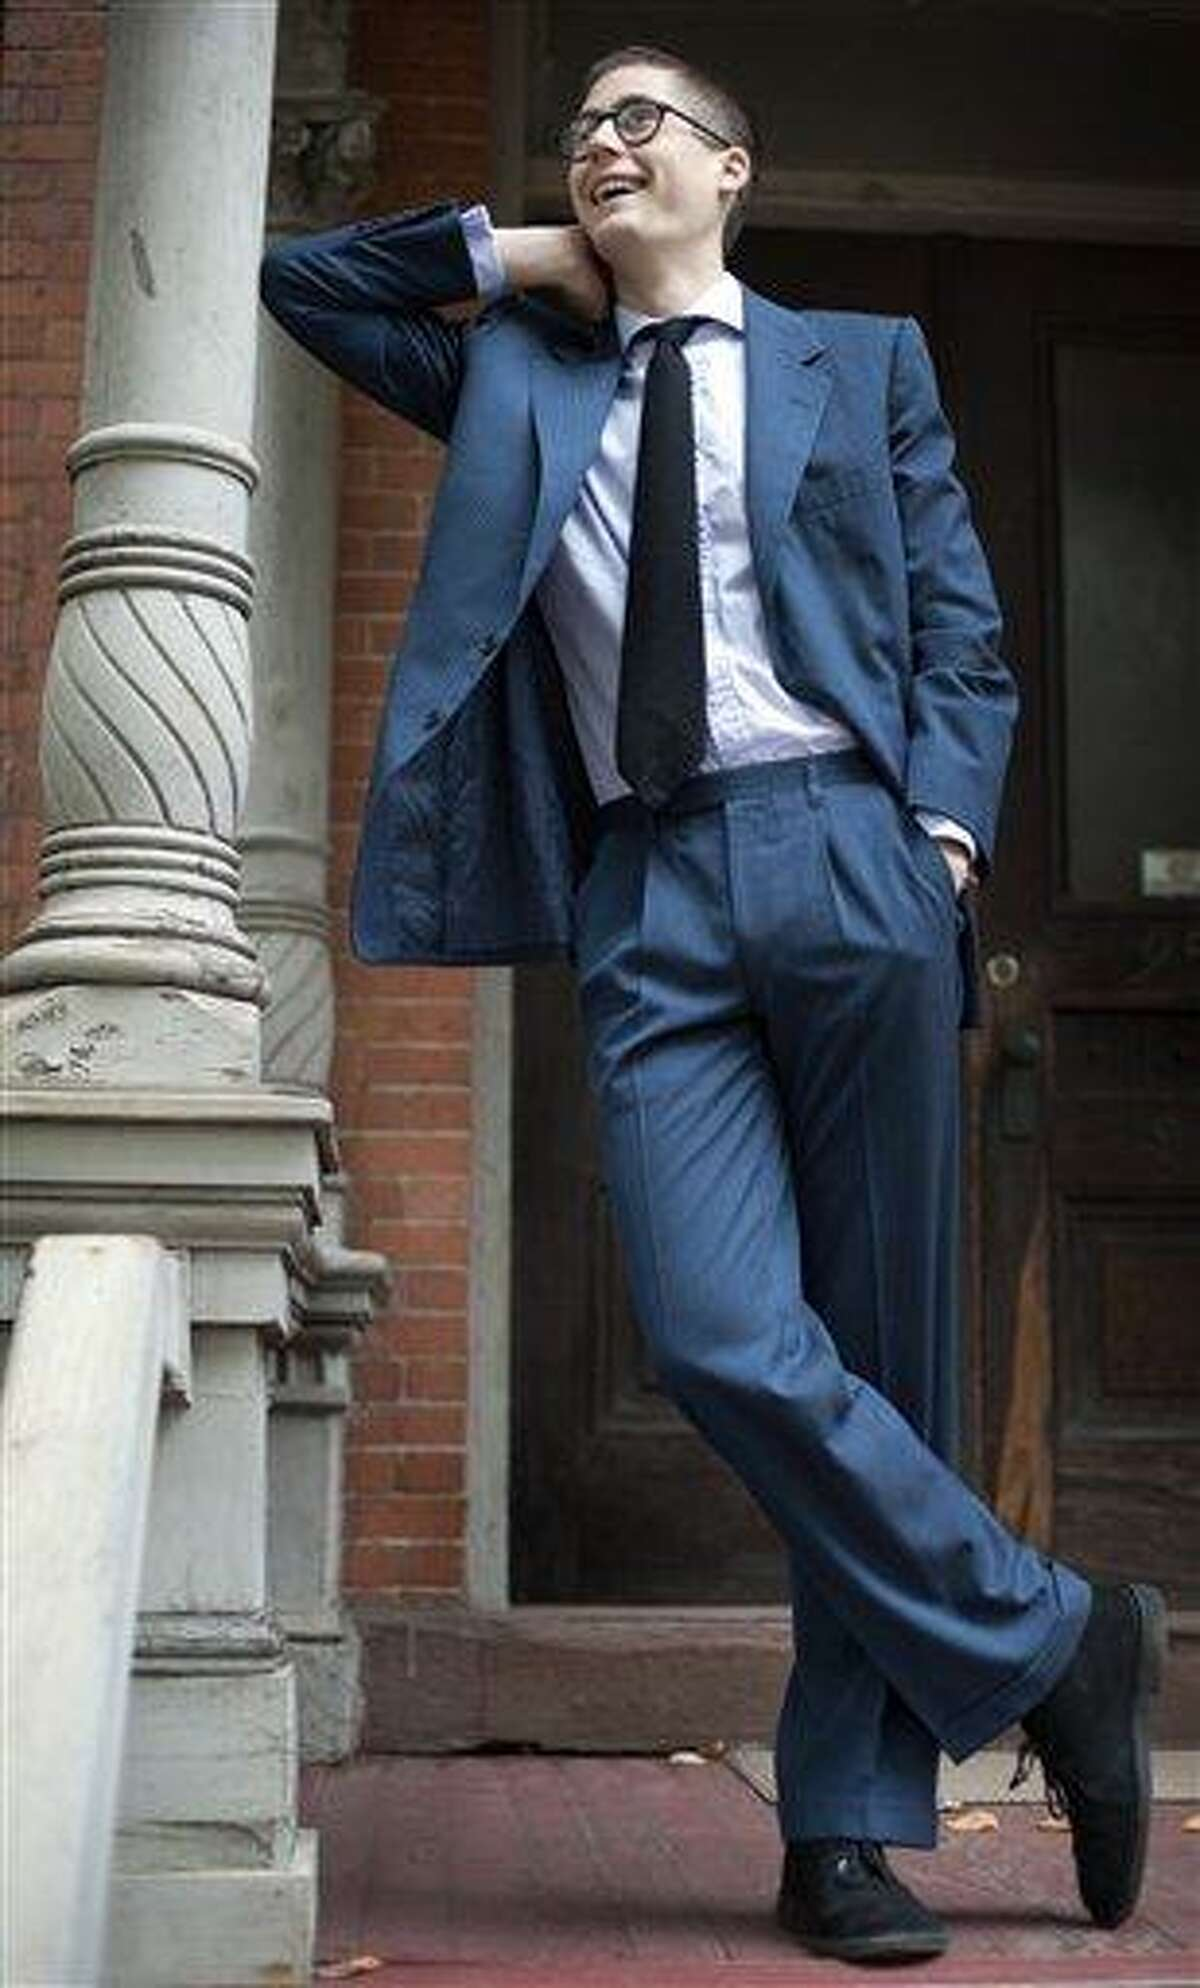 Peter Gamlen poses in a suit he found in the basement of his apartment. ASSOCIATED PRESS PHOTO